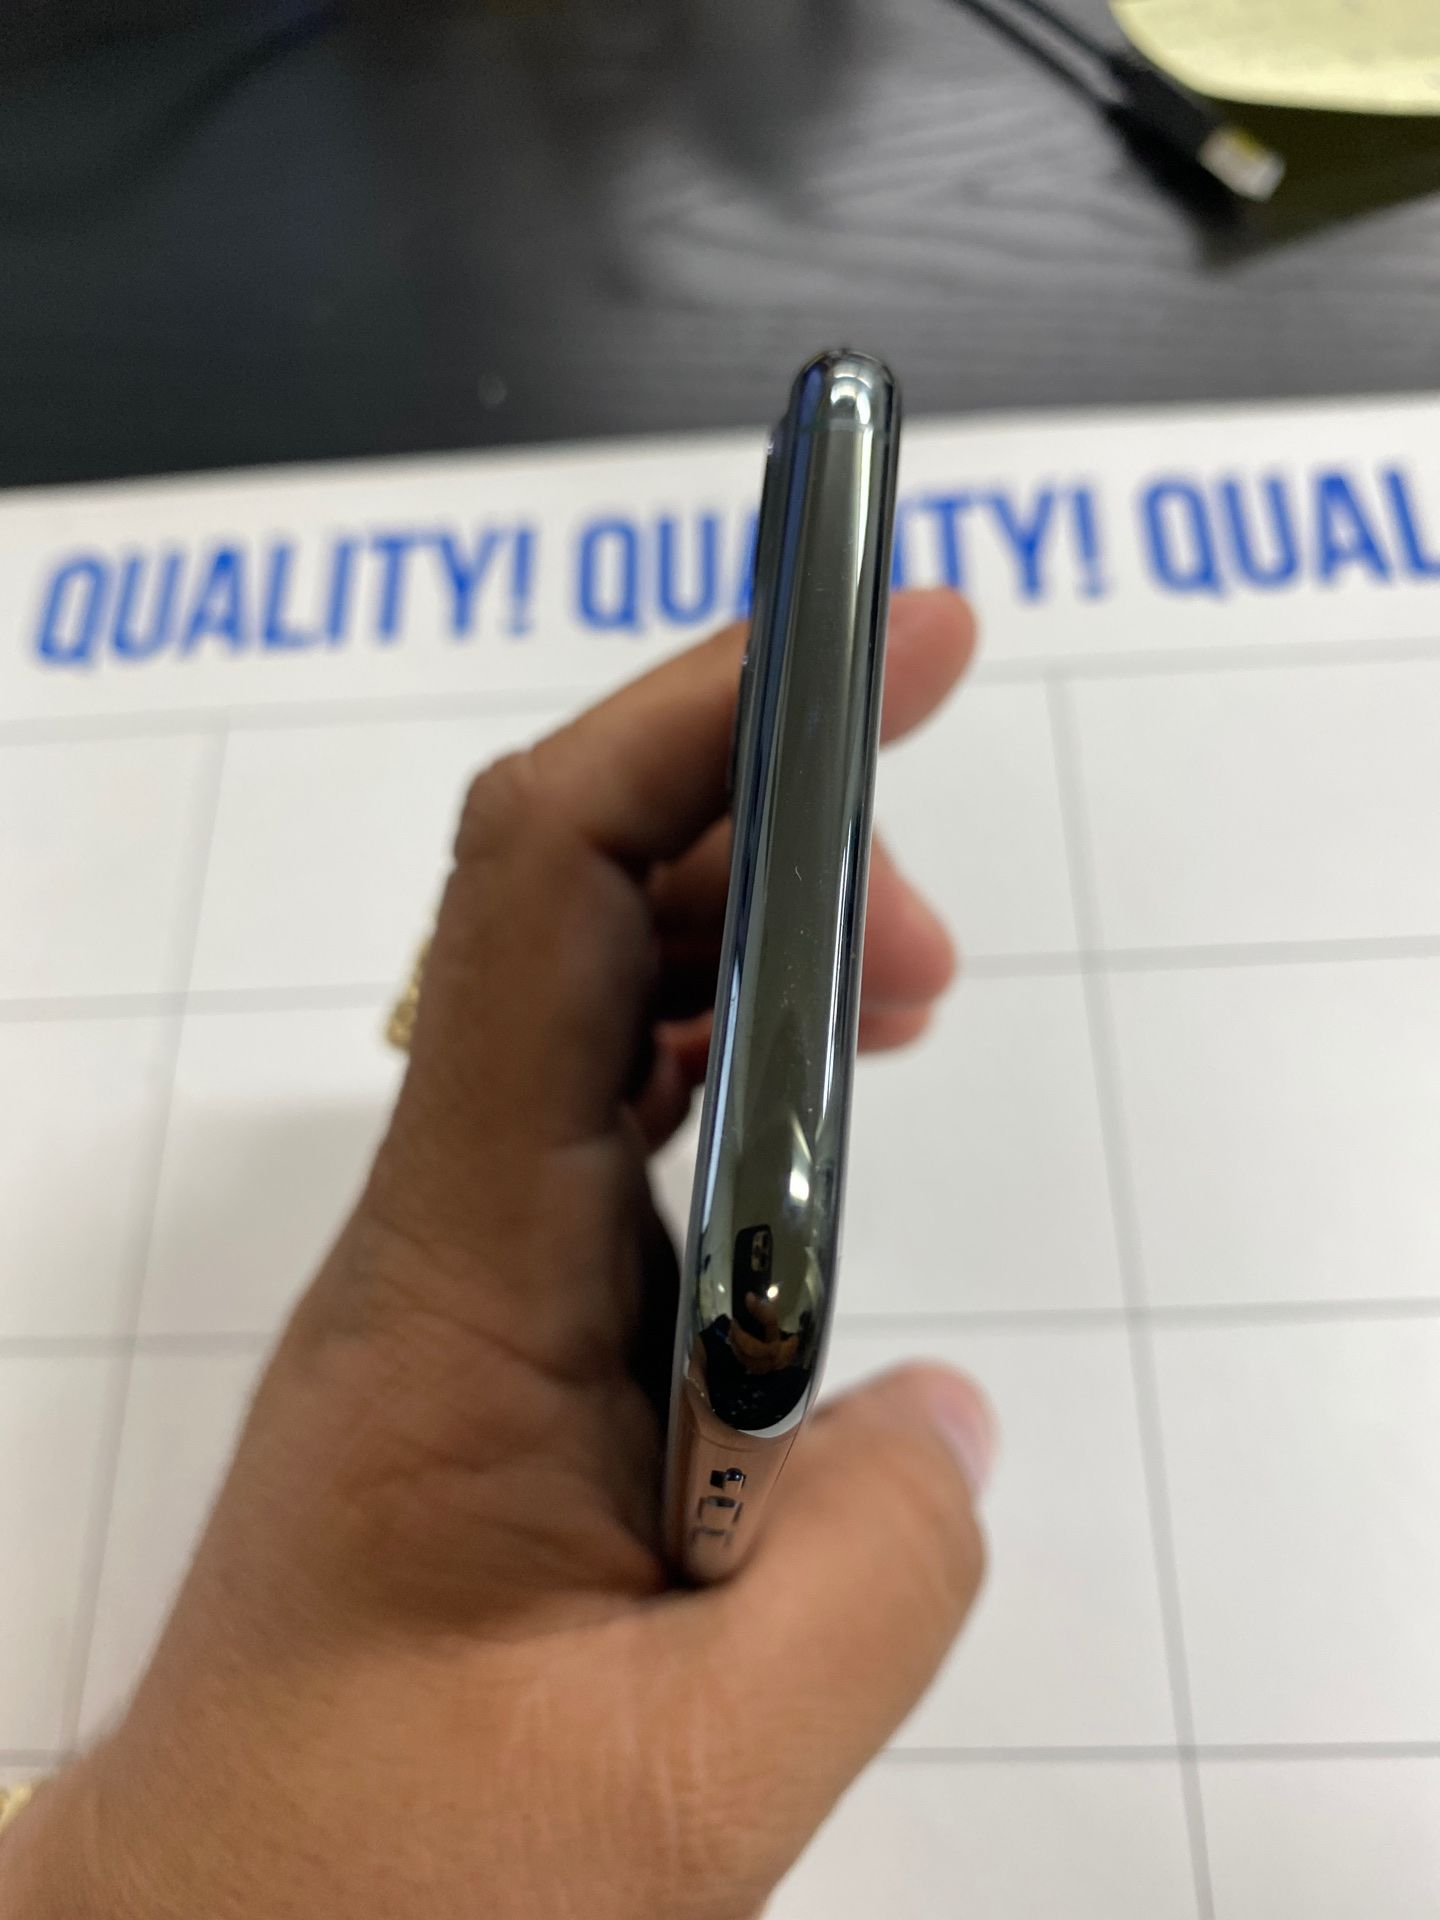 iPhone 11 Pro Max 256GB T-Mobile network only Metro PCS / Simplemobile/ ultra mobile/ lyca mobile/ T-Mobile network only The phone is ready to use